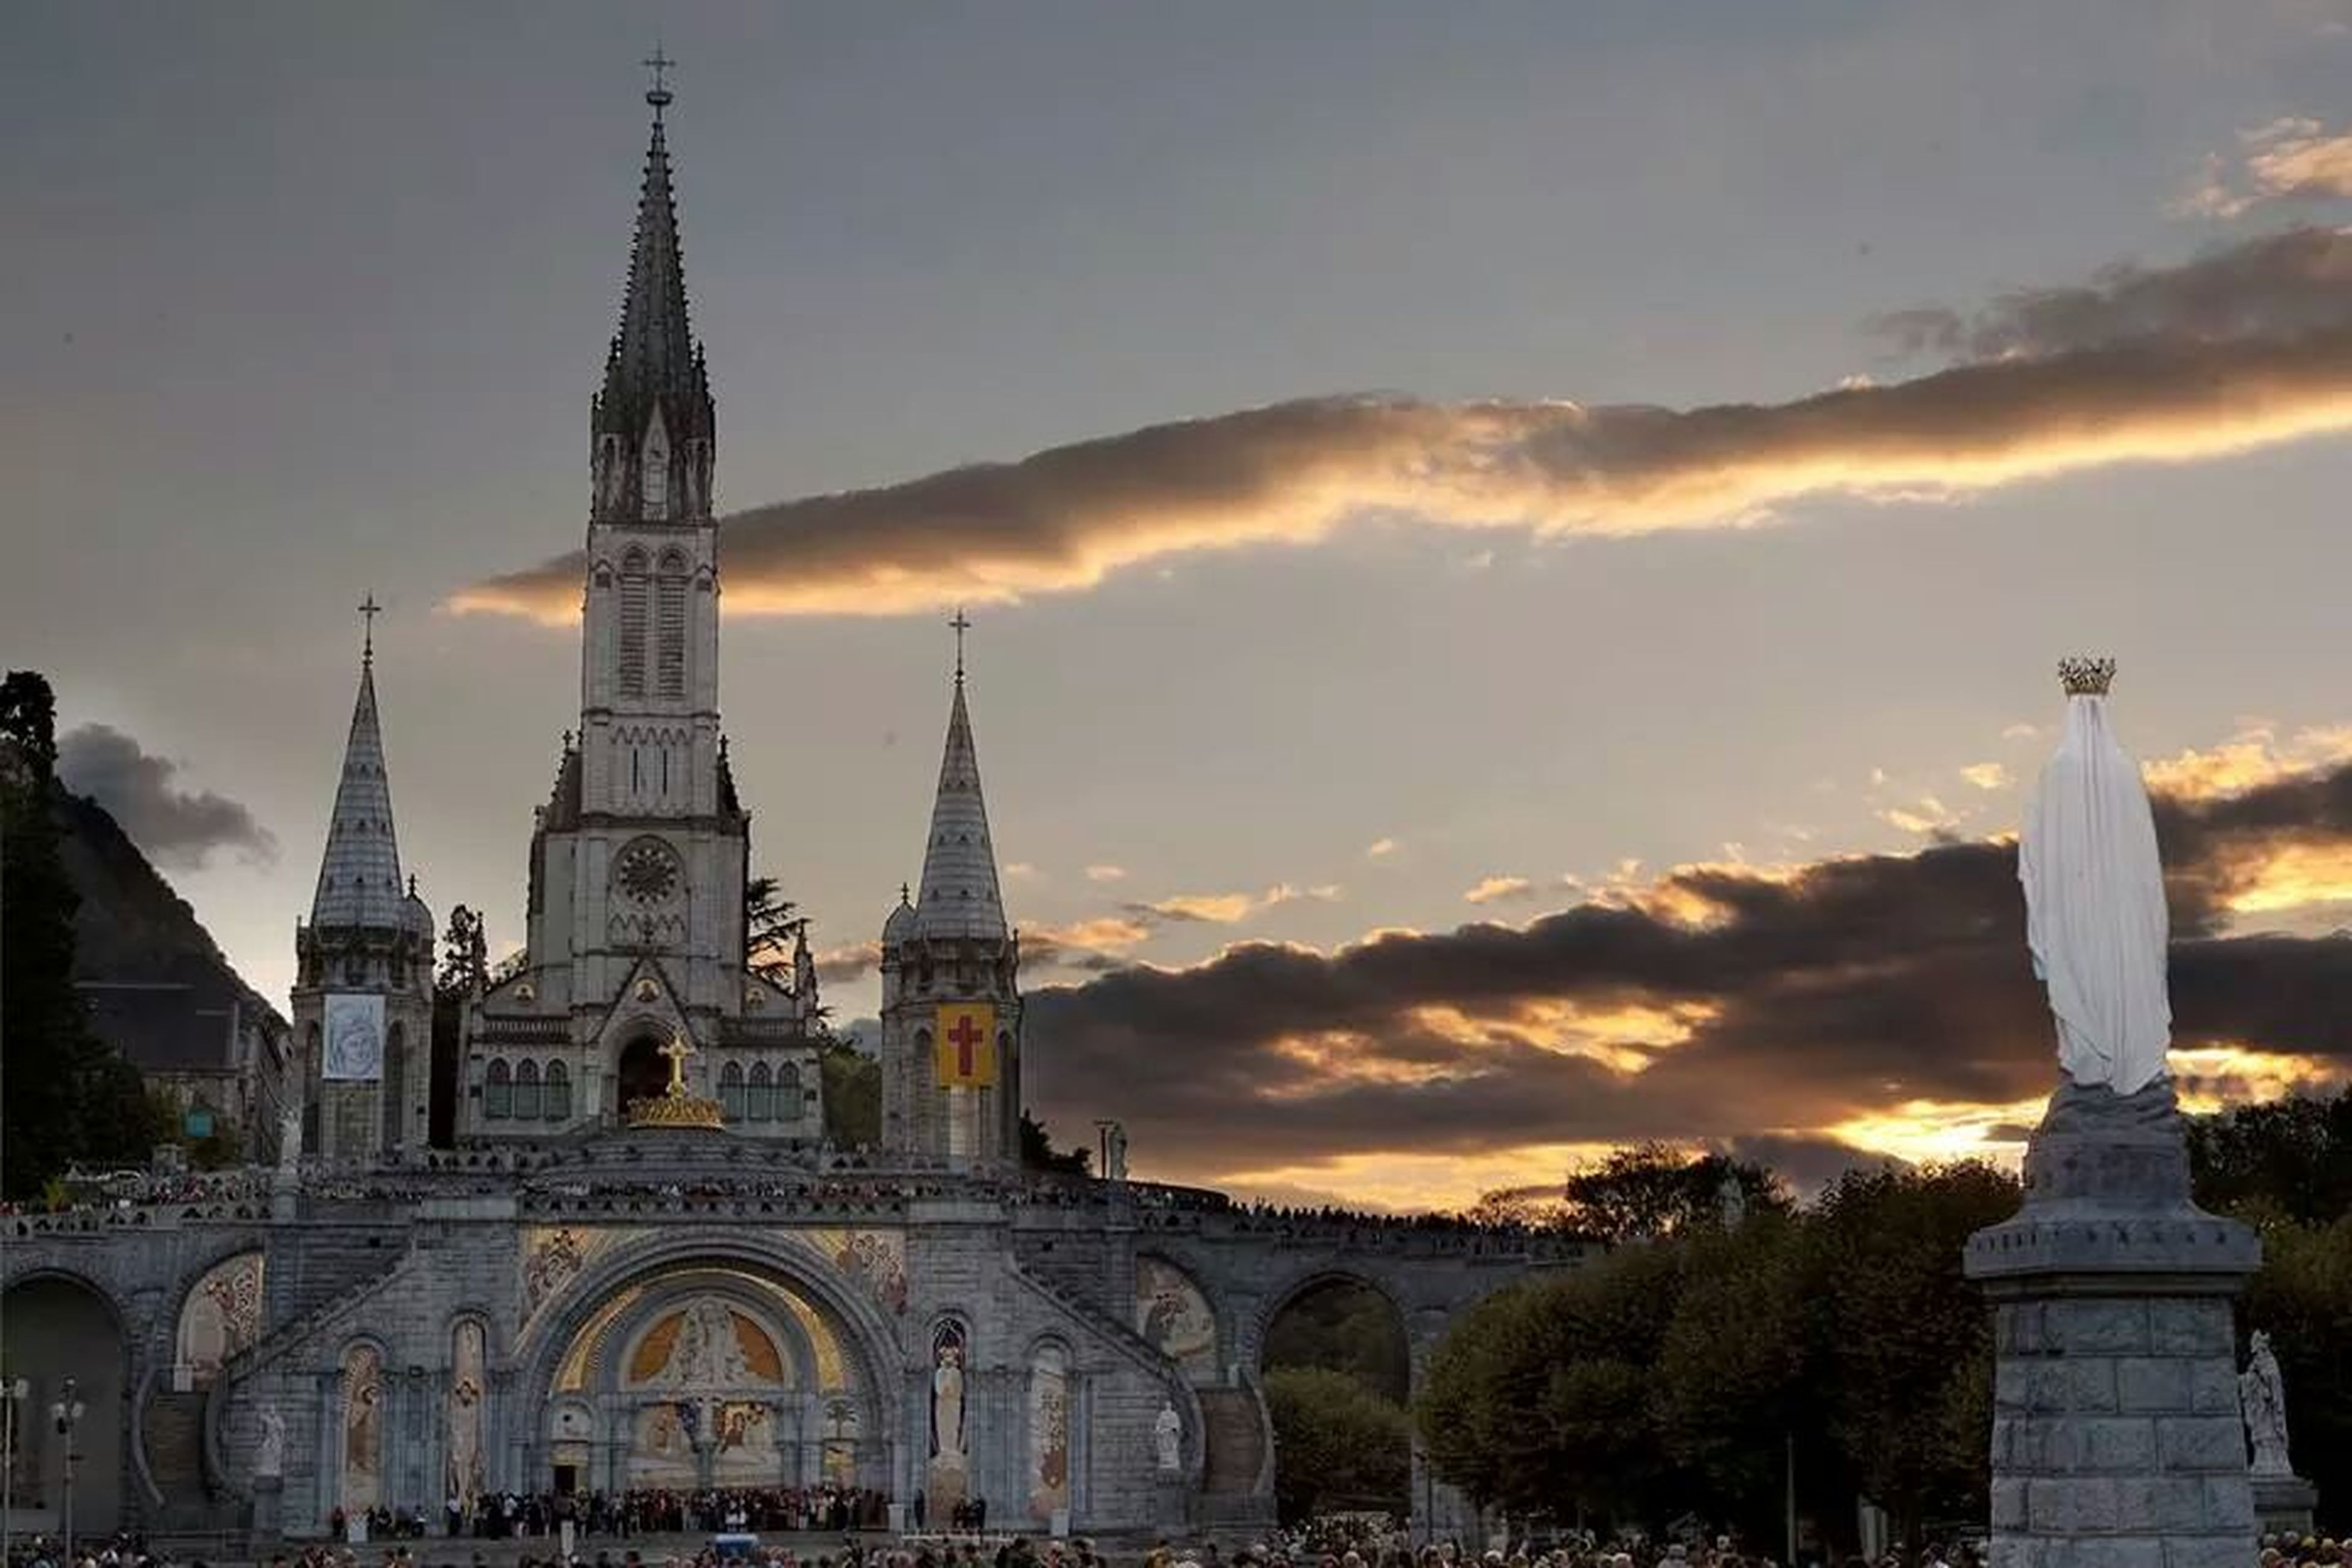 architecture, built structure, building exterior, place of worship, religion, sky, spirituality, church, famous place, travel destinations, sunset, cloud - sky, tourism, history, dome, cathedral, low angle view, travel